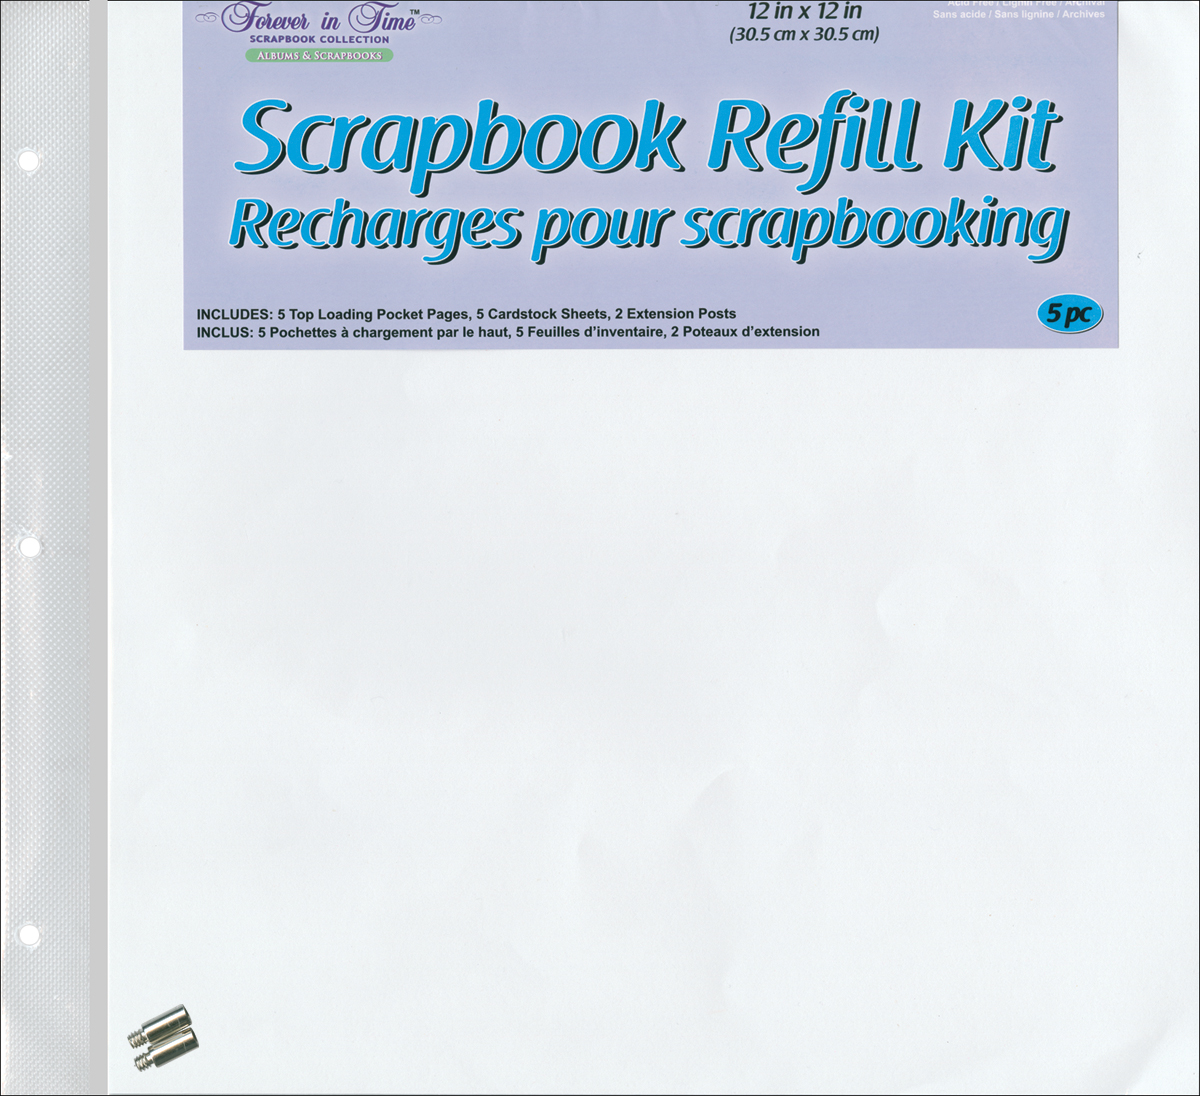 MULTICRAFT / FOREVER IN TIME SCRAPBOOK REFILL KIT